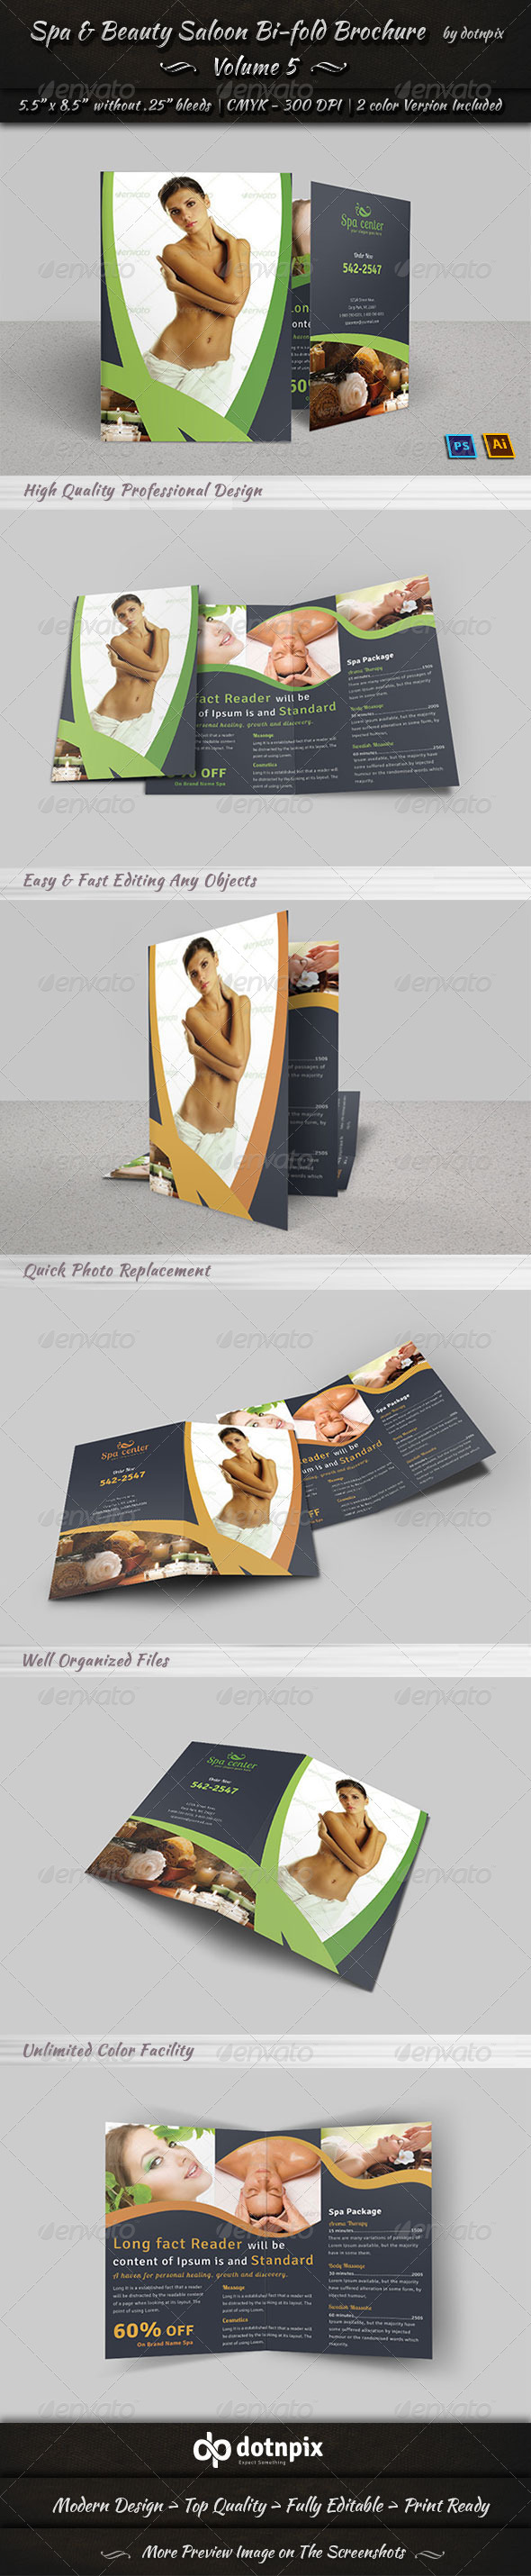 GraphicRiver Spa & Beauty Saloon Bi-fold Brochure Volume 5 7871093